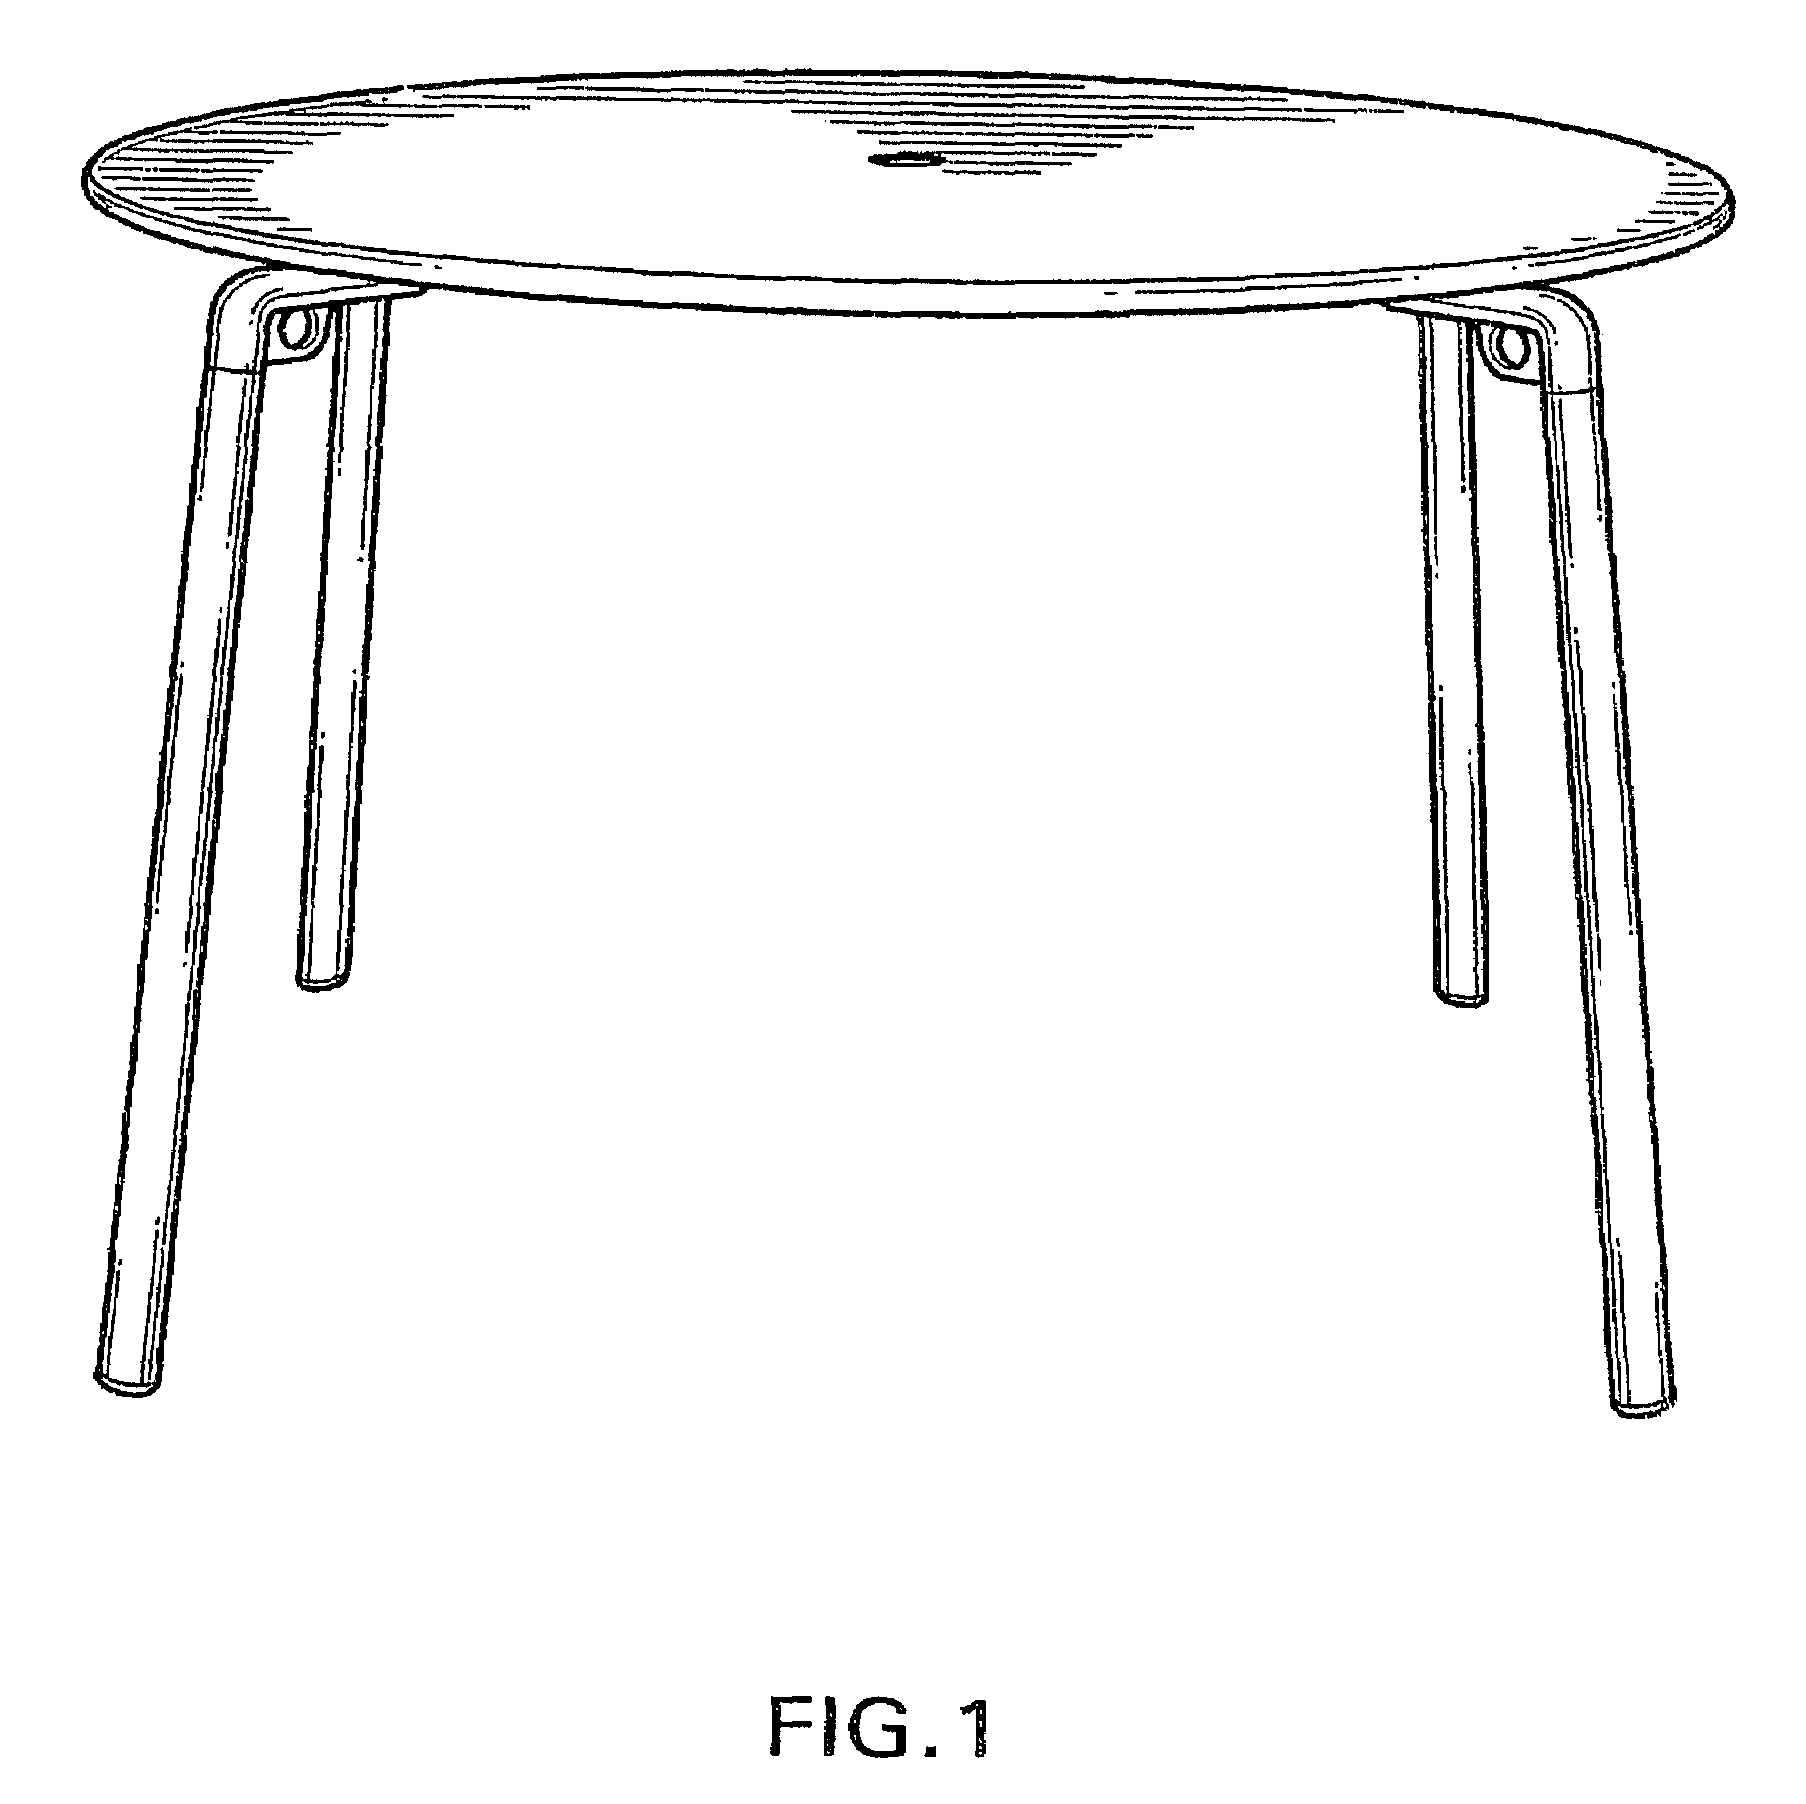 Mwh Metallwerk Helmstadt Gmbh Patent Usd560082 Stackable Round Table Google Patents